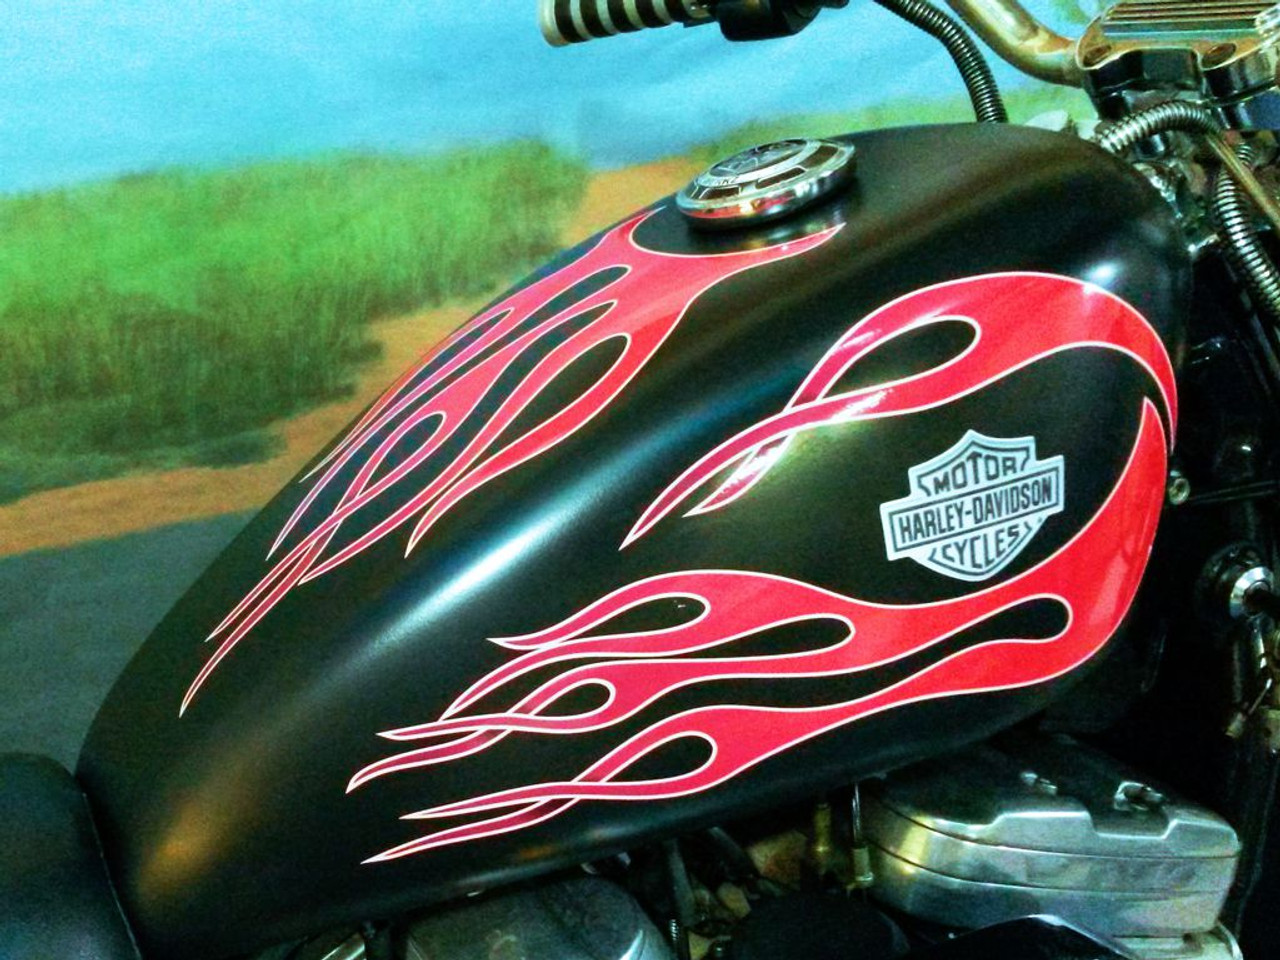 No. 6 Layered Hot Rod | Flame decals | Cherry Red | 6pc set